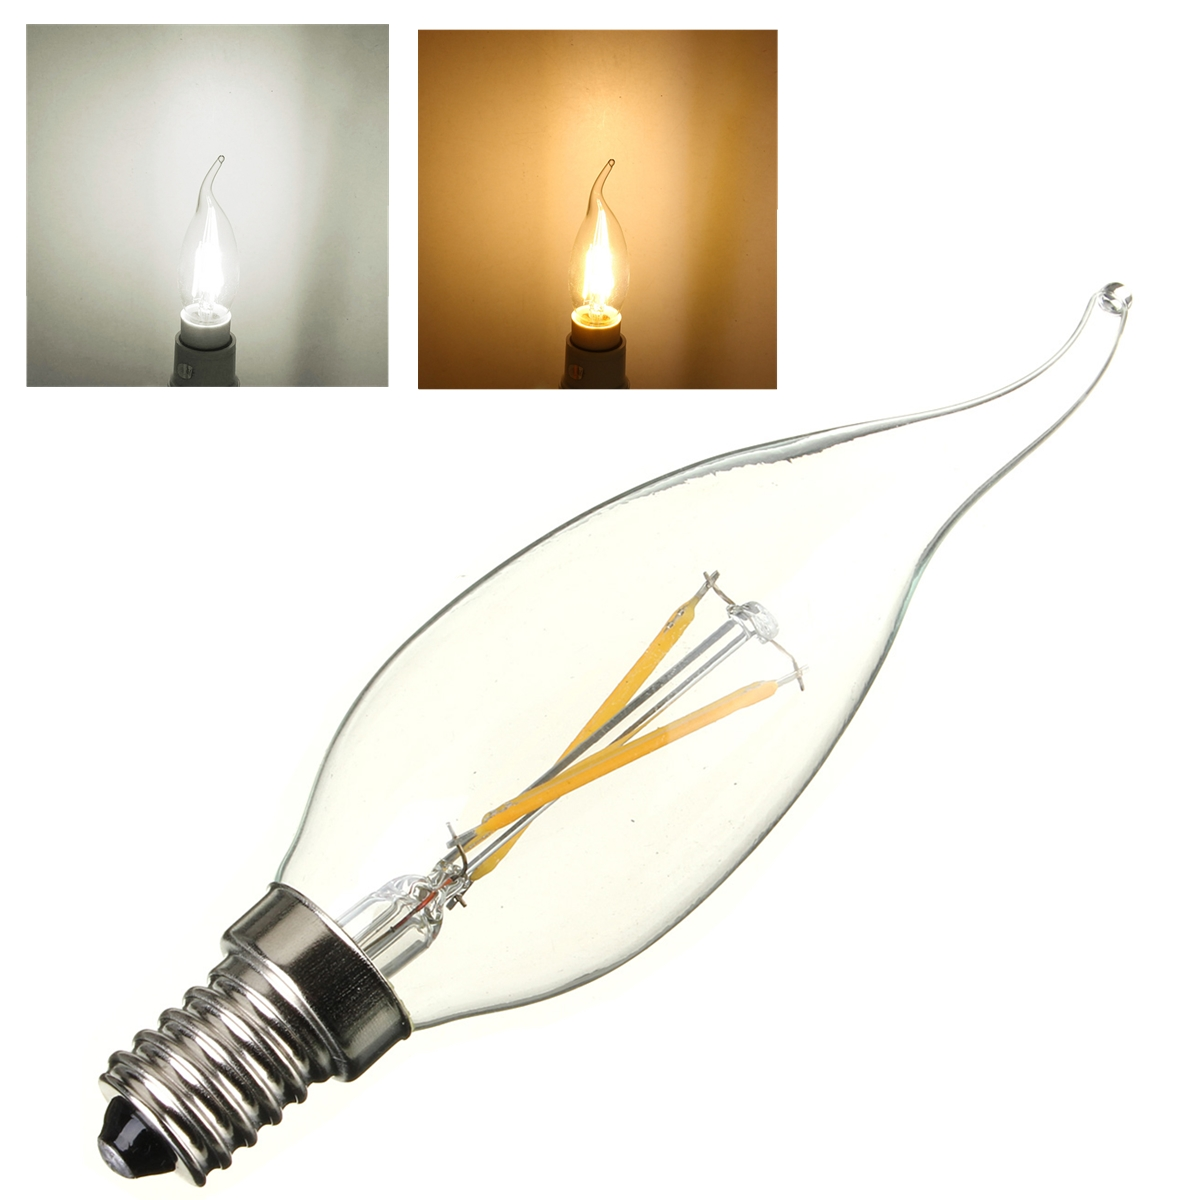 e14 ses 2w 4w edison filament cob led glass chandelier candle light lamp bulb ebay. Black Bedroom Furniture Sets. Home Design Ideas